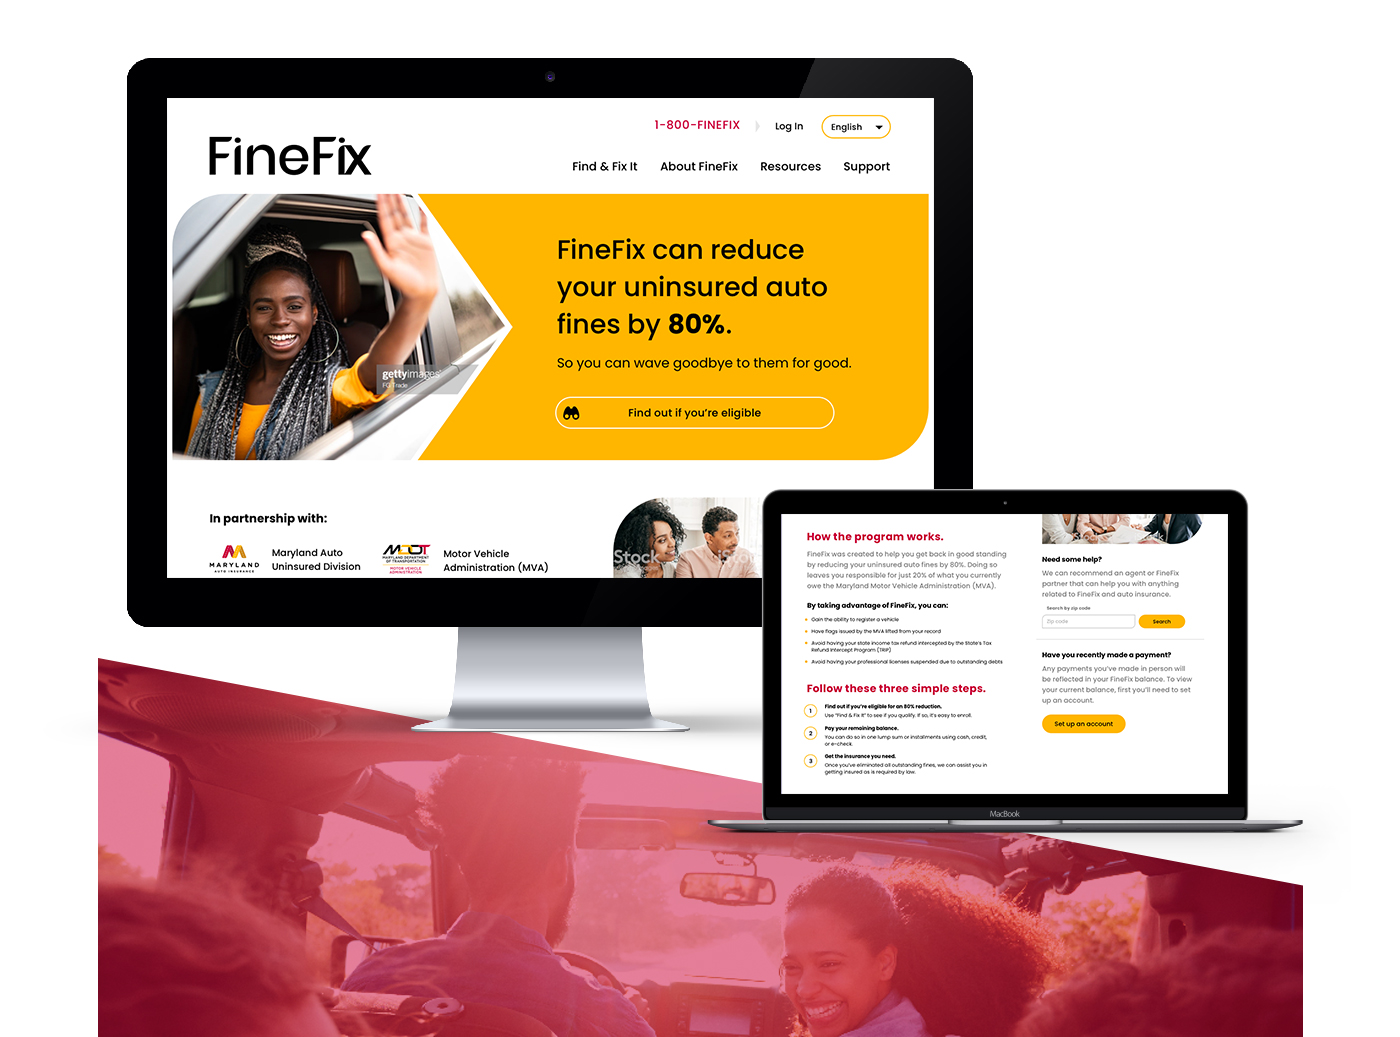 A computer monitor and a laptop screen showing different web pages for the FineFix program